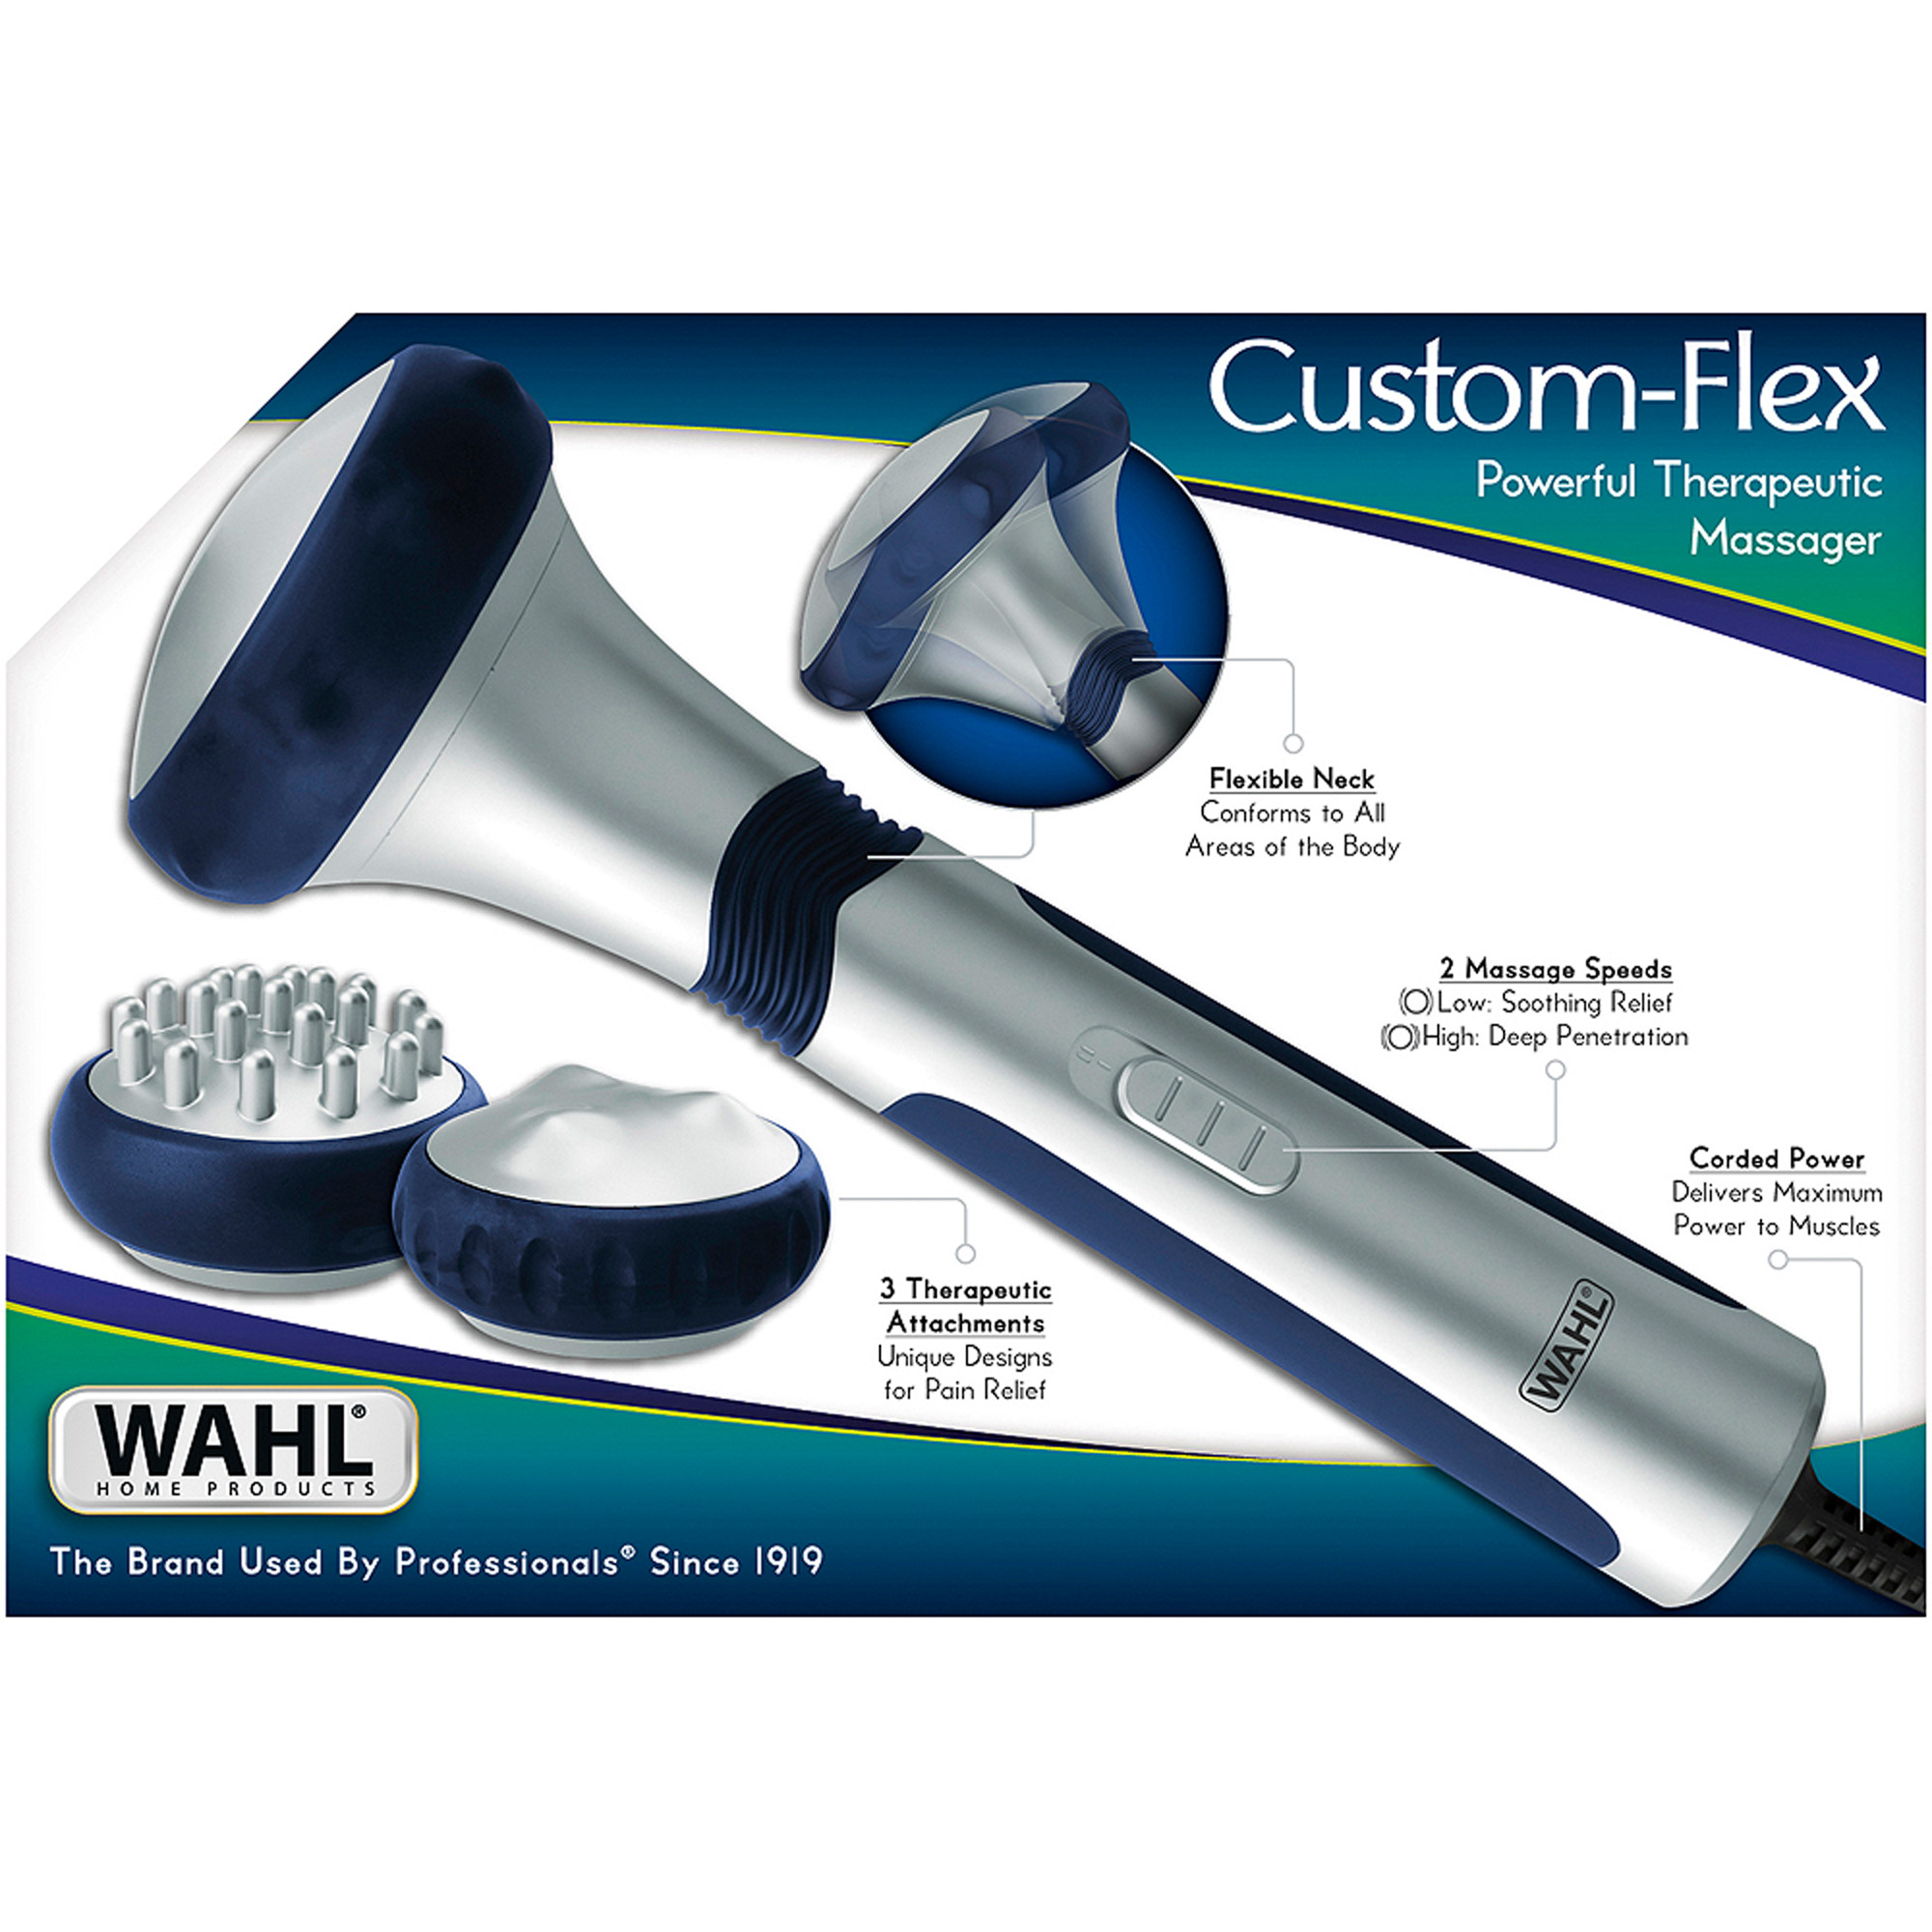 Wahl Custom-Flex Powerful Therapeutic Massager